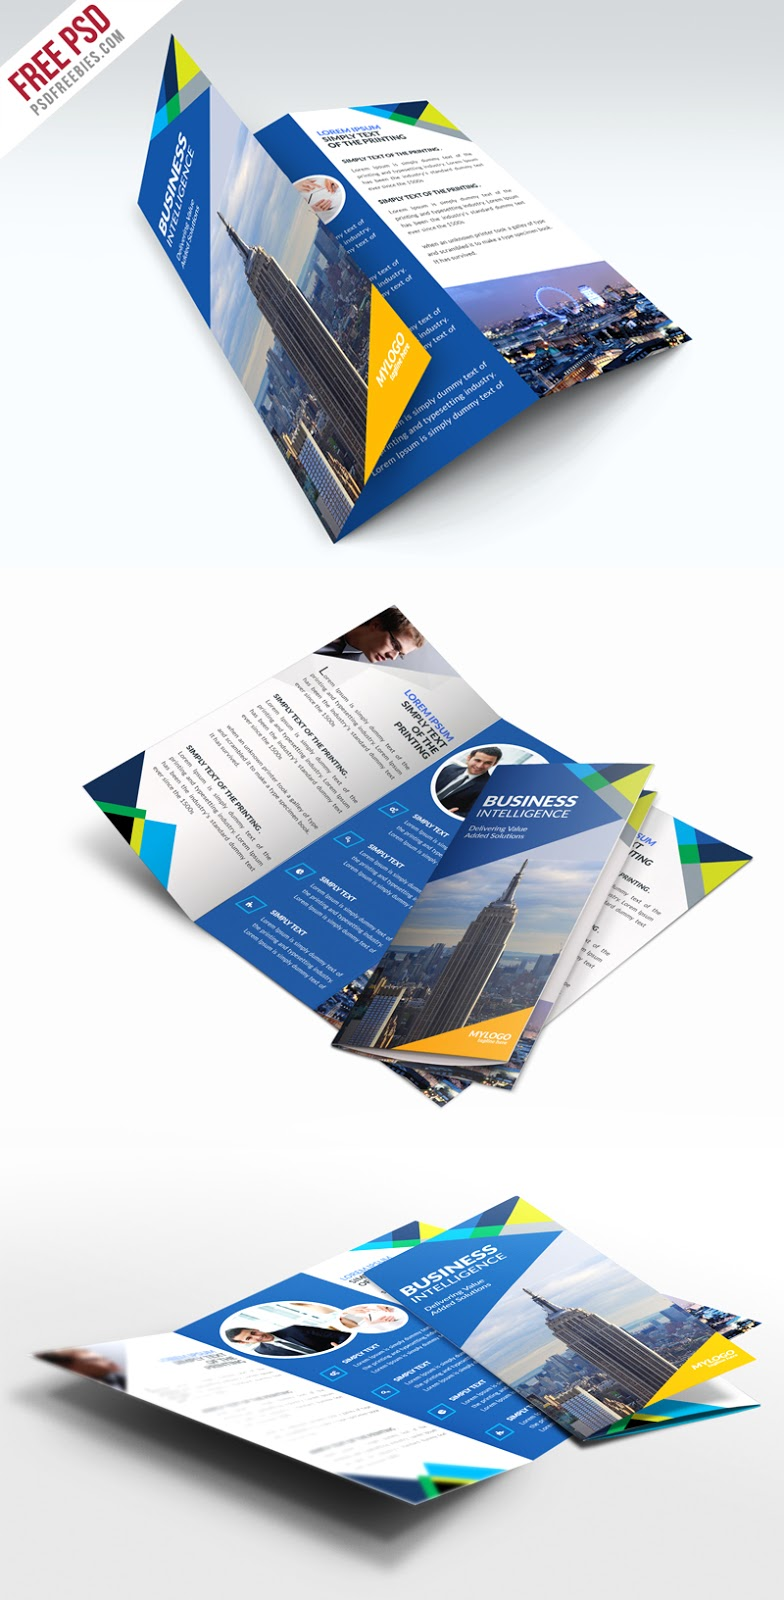 Download Free Business Trifold Brochure Psd Template Free Psd Now